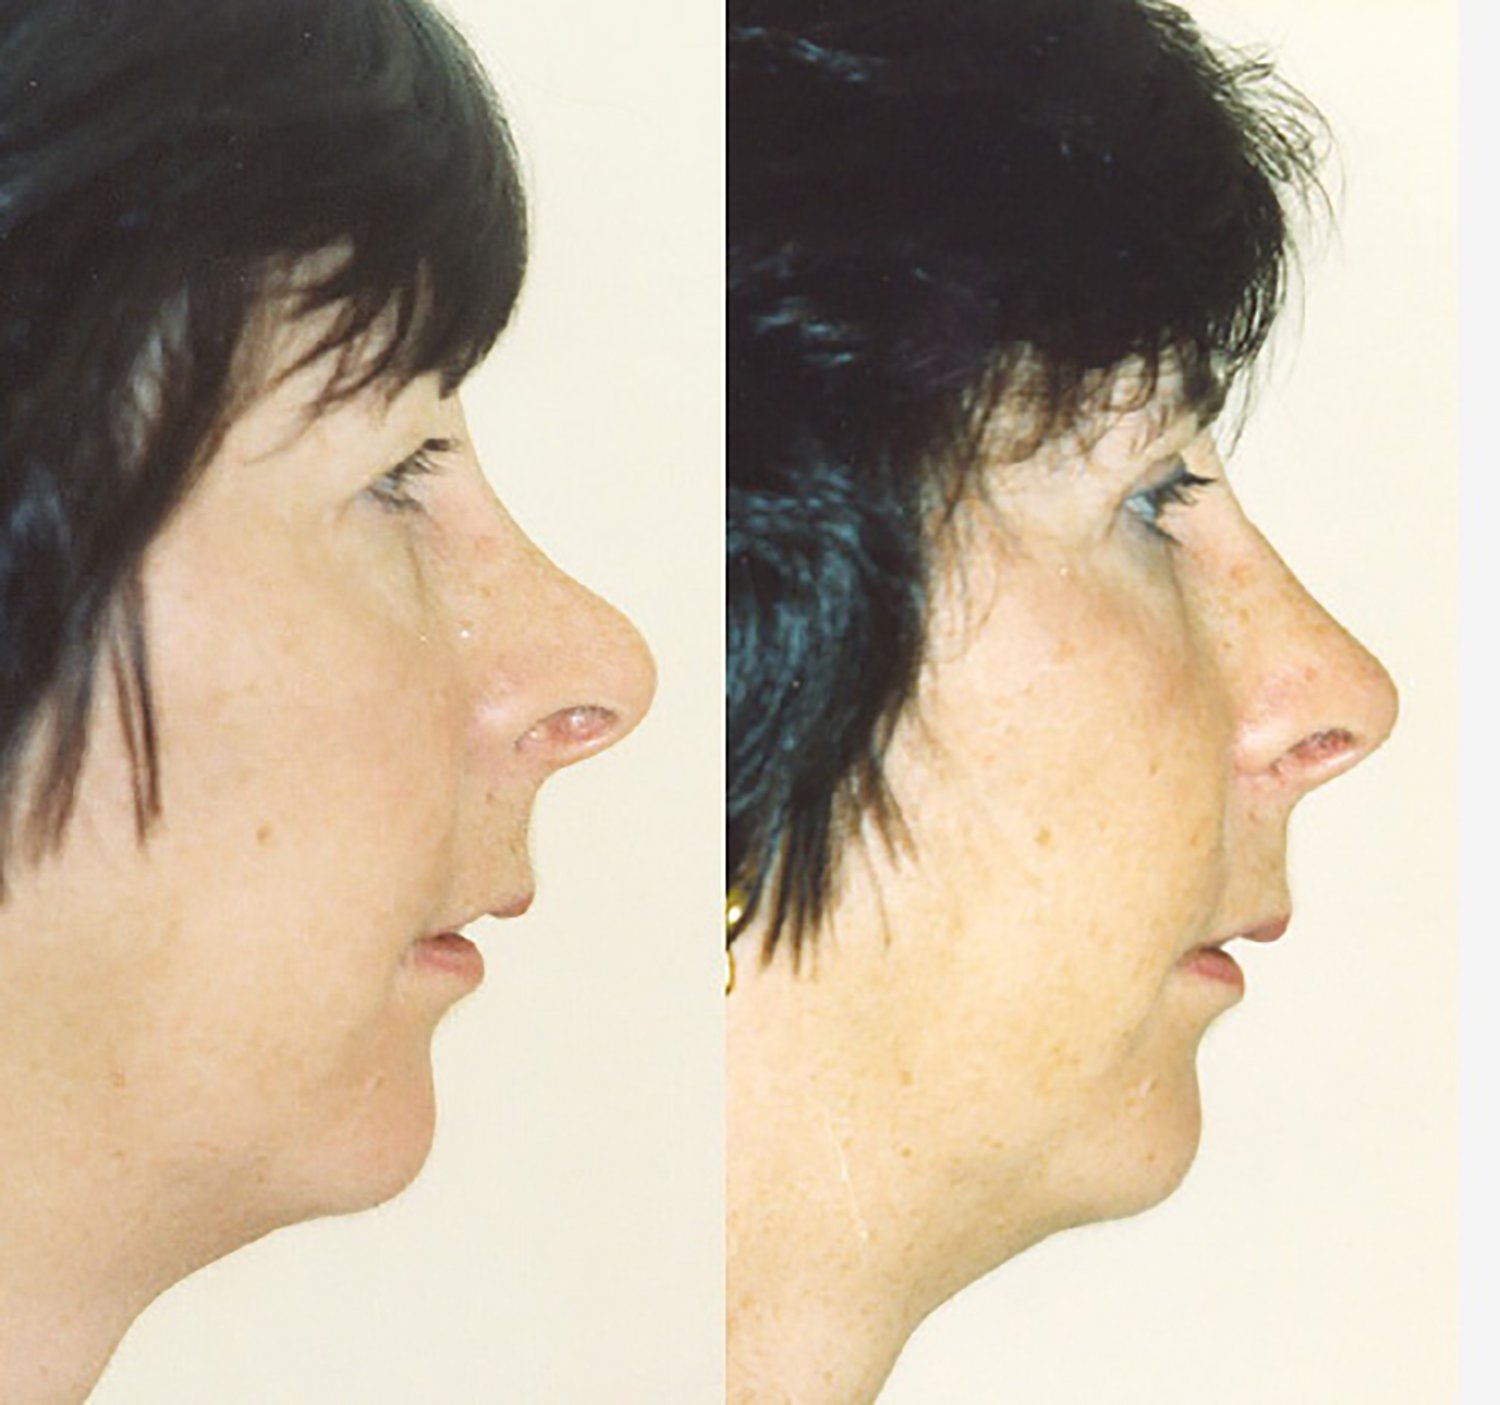 secondary rhinoplasty, correction of previous surgery